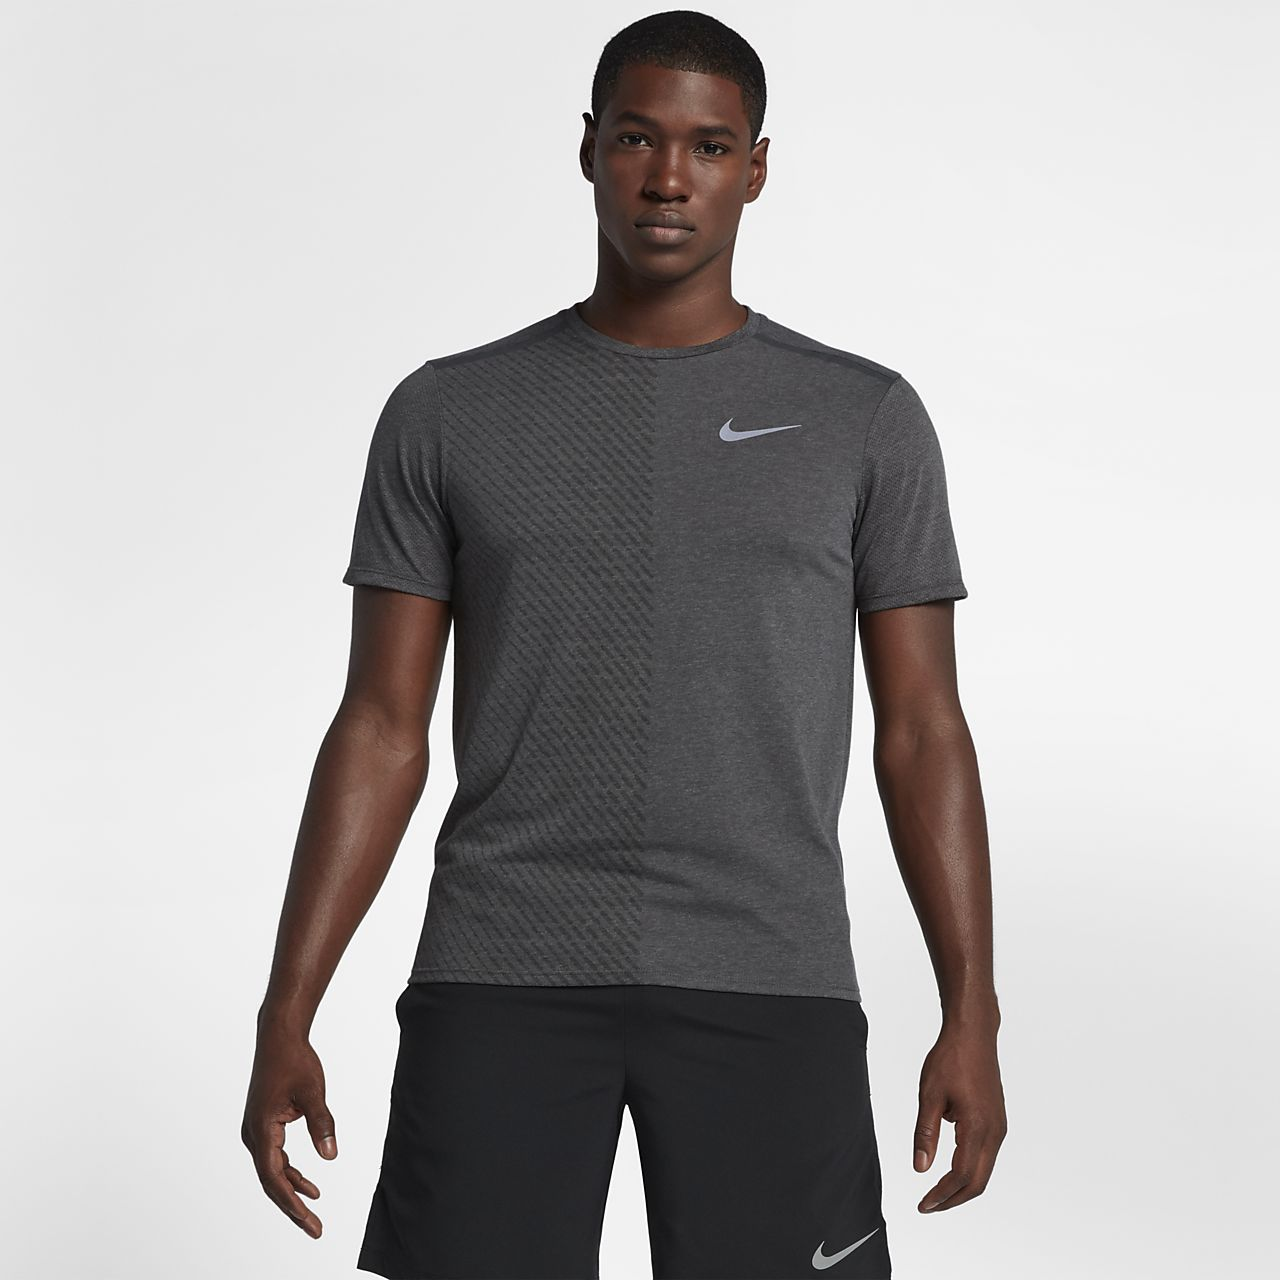 e52fa5c5 Nike Tailwind Men's Short-Sleeve Running Top. Nike.com VN